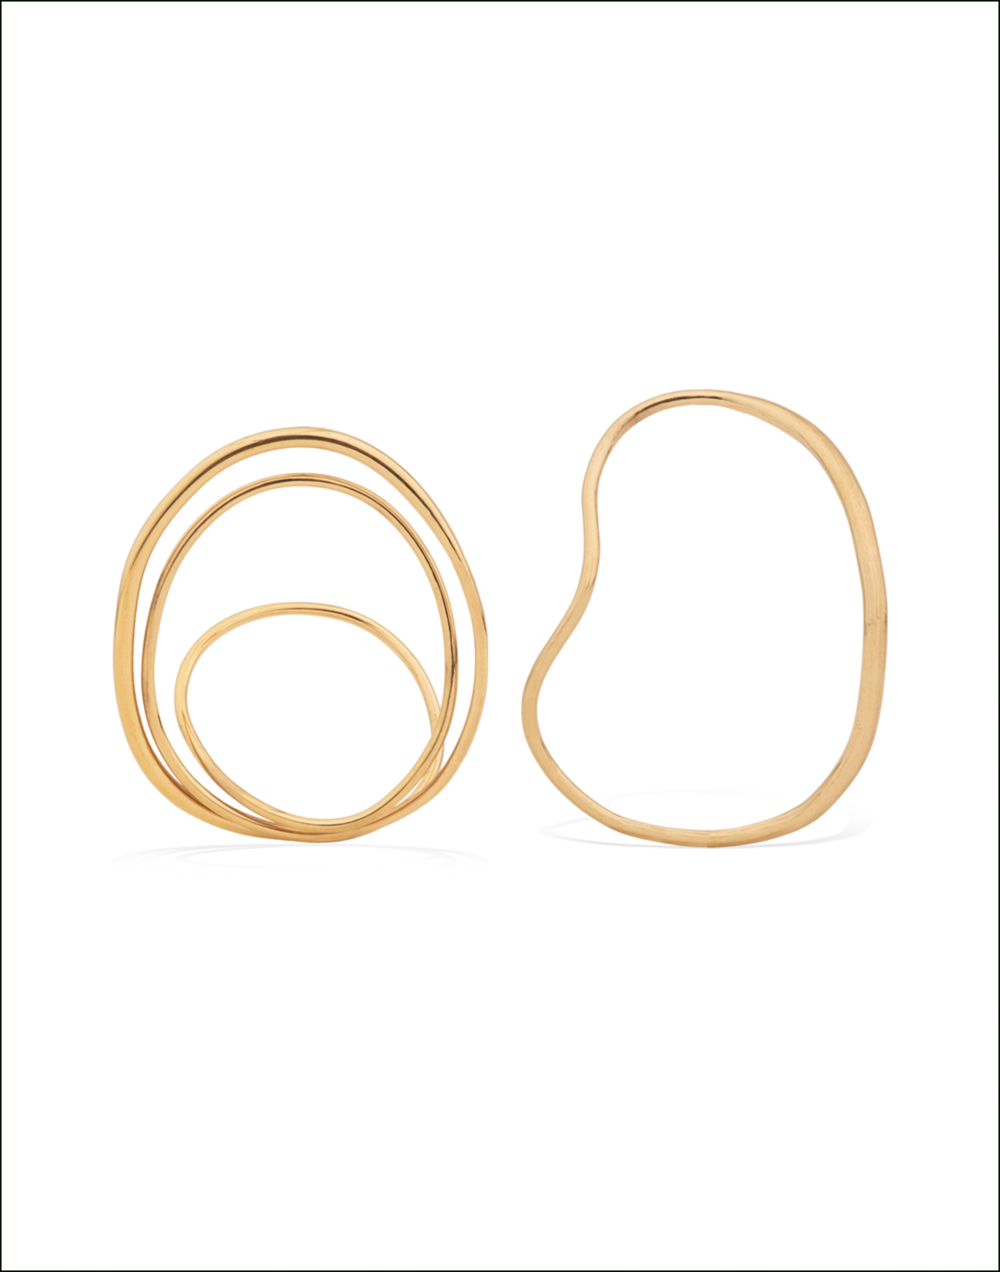 Completedworks-Earrings-Gold-Vermeil-Echoes-of-Memory-1-1.png